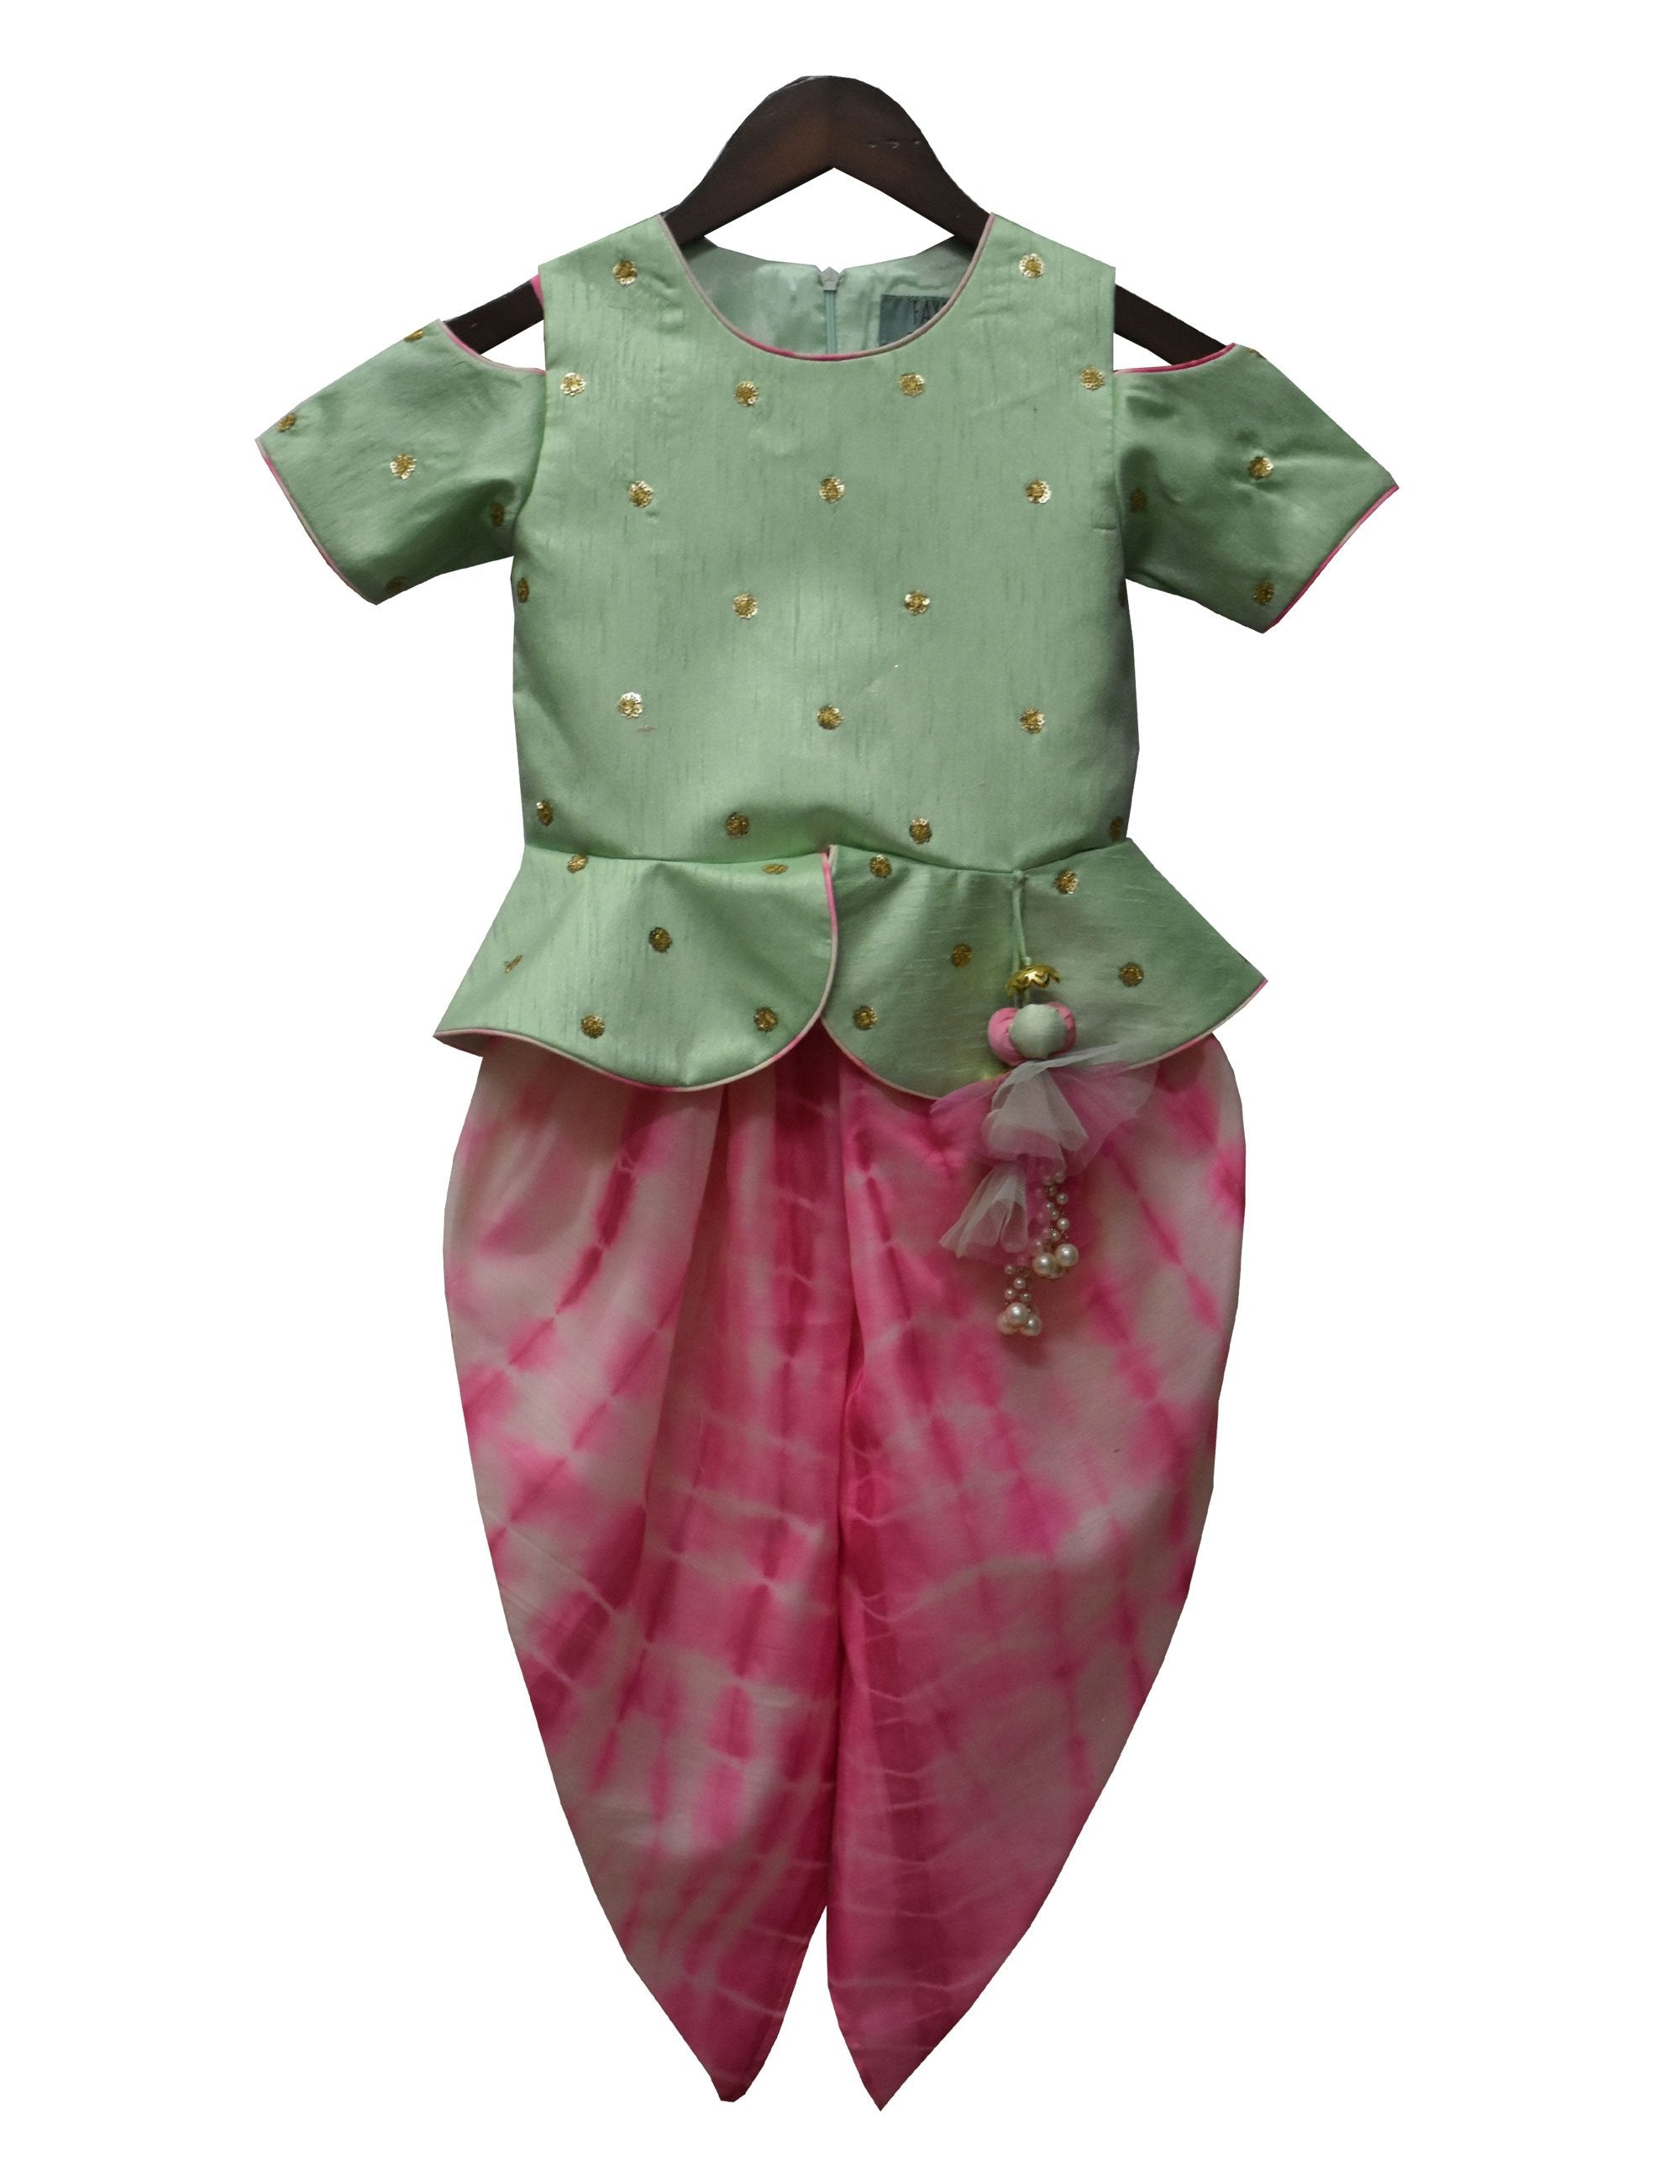 Peplum Choli with Tie and Die Dhoti in Green and Pink Colour for Girls